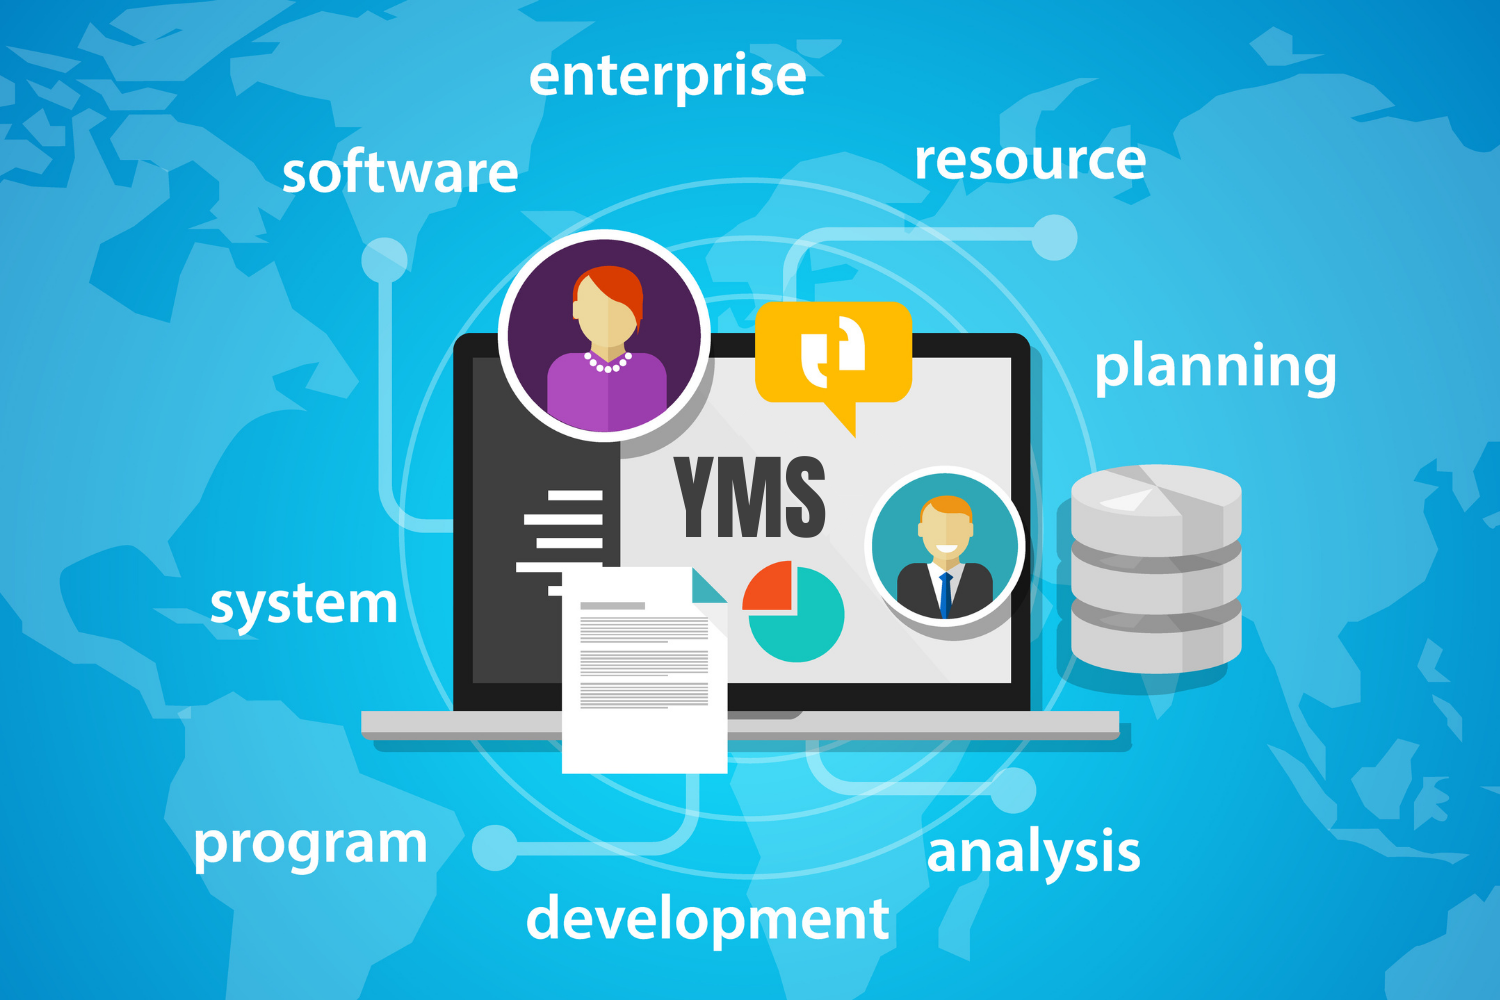 Illustration of a computer with YMS for yard management integration on the screen with text surrounding it